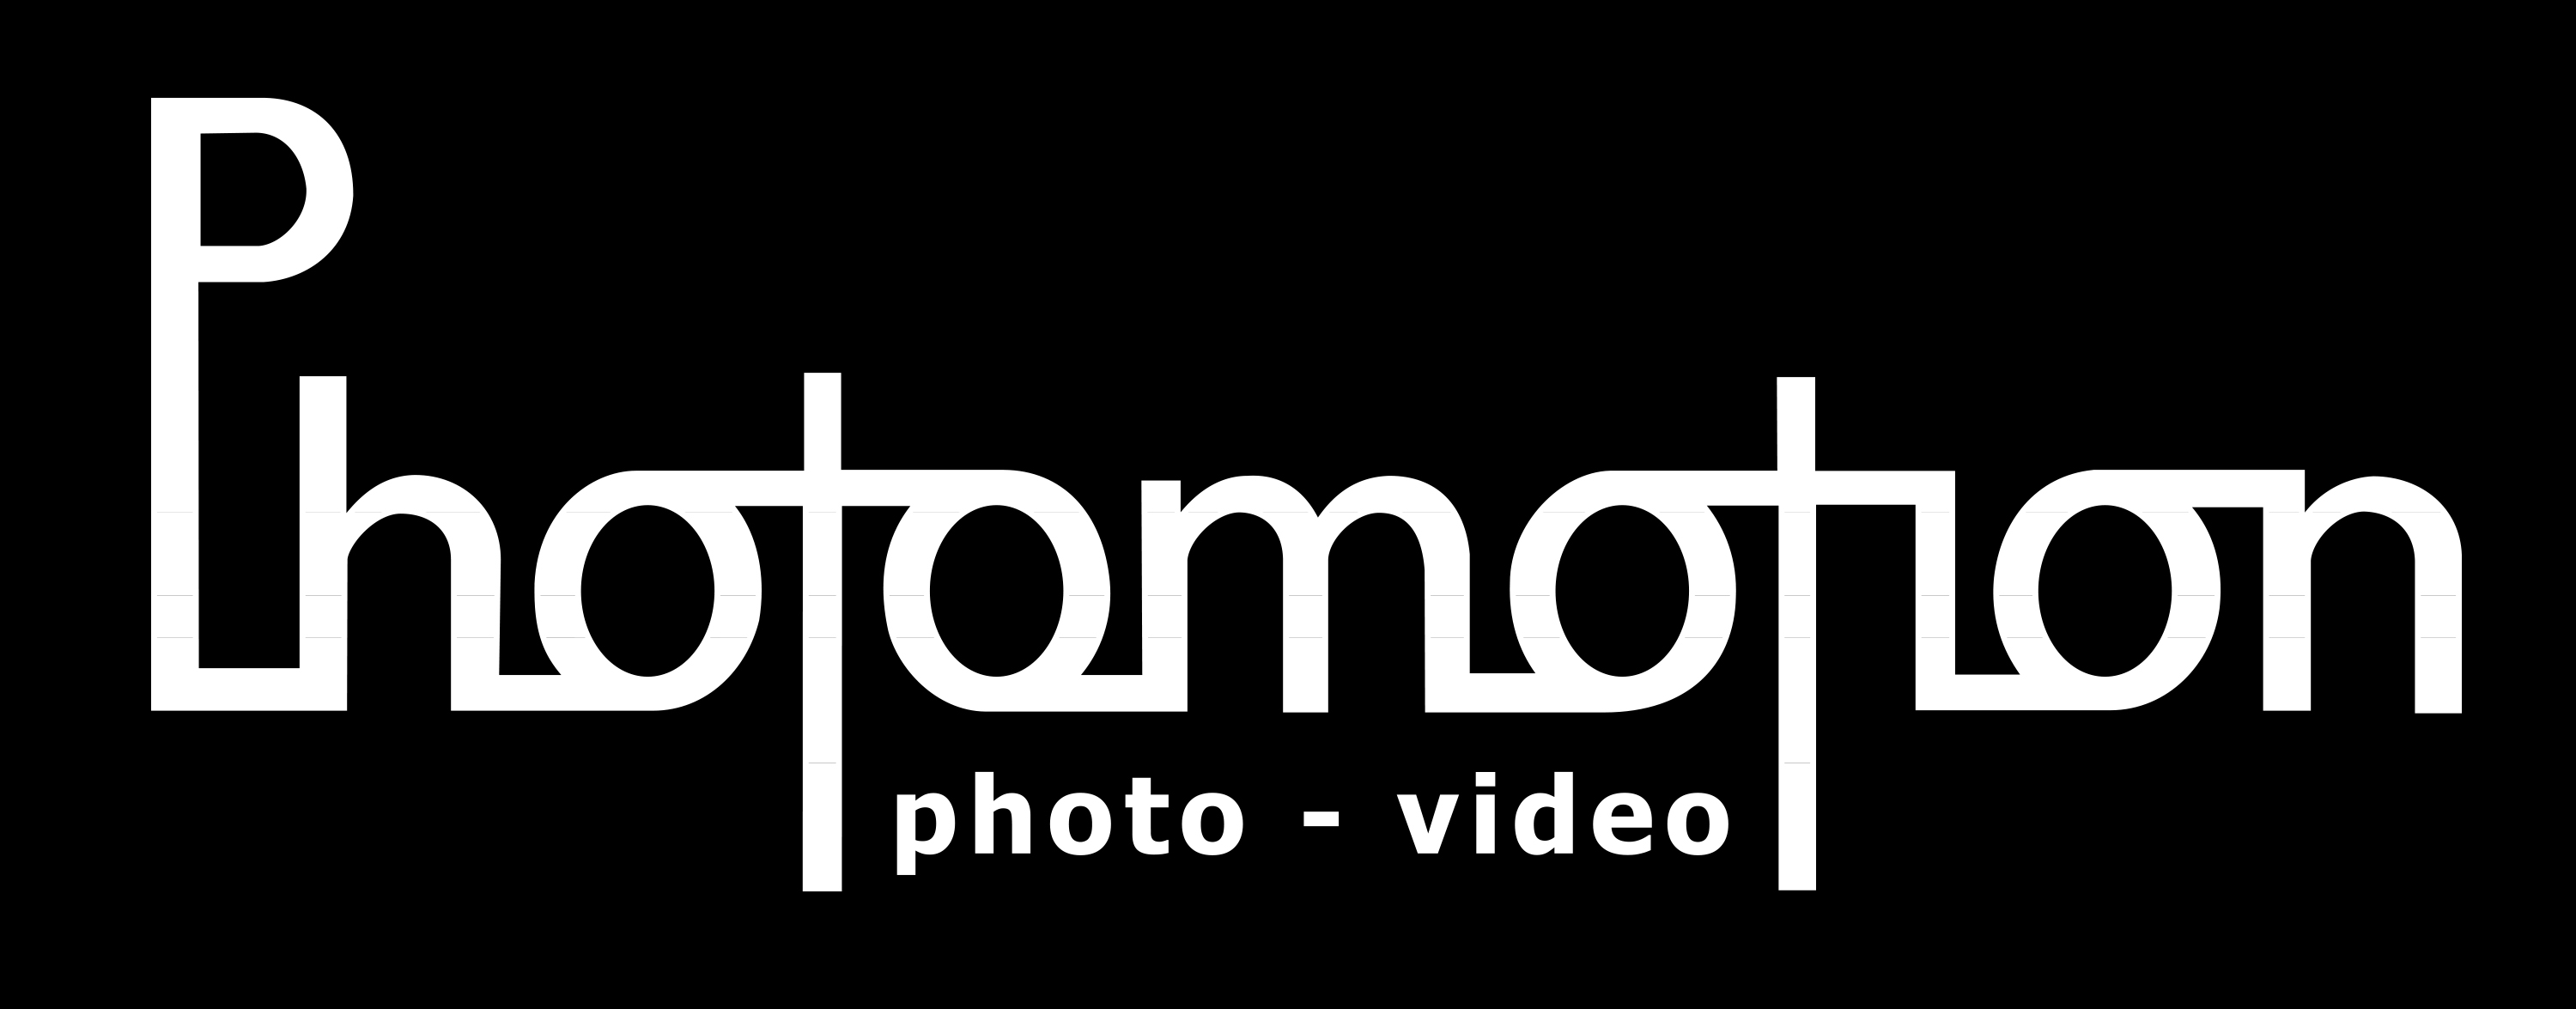 logo photomotion